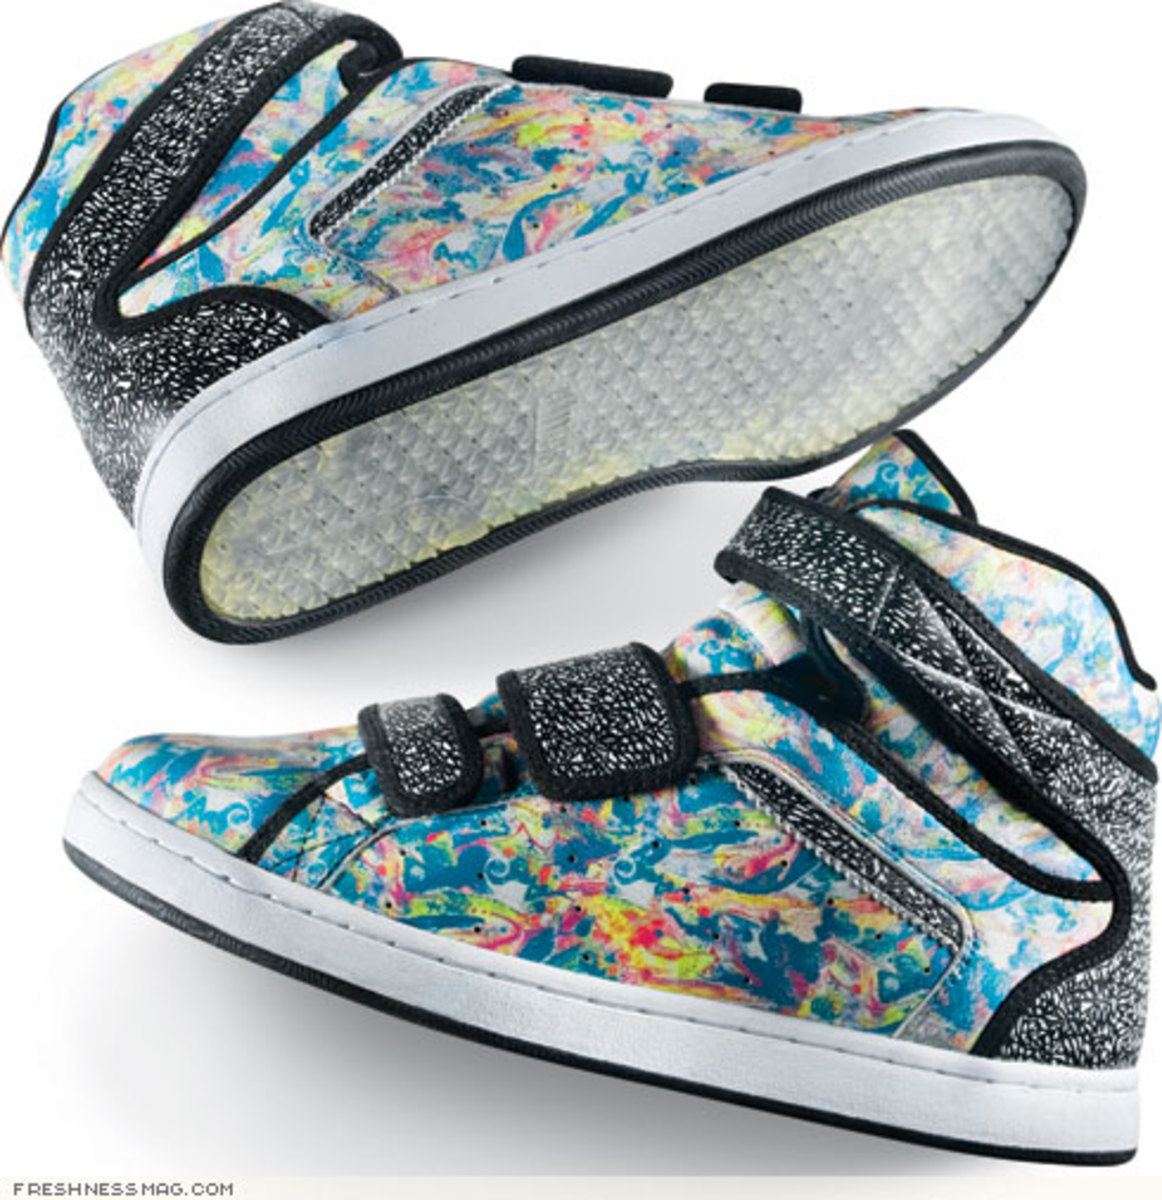 Freshness Feature: etnies Plus Spring 2007 Collection - 2